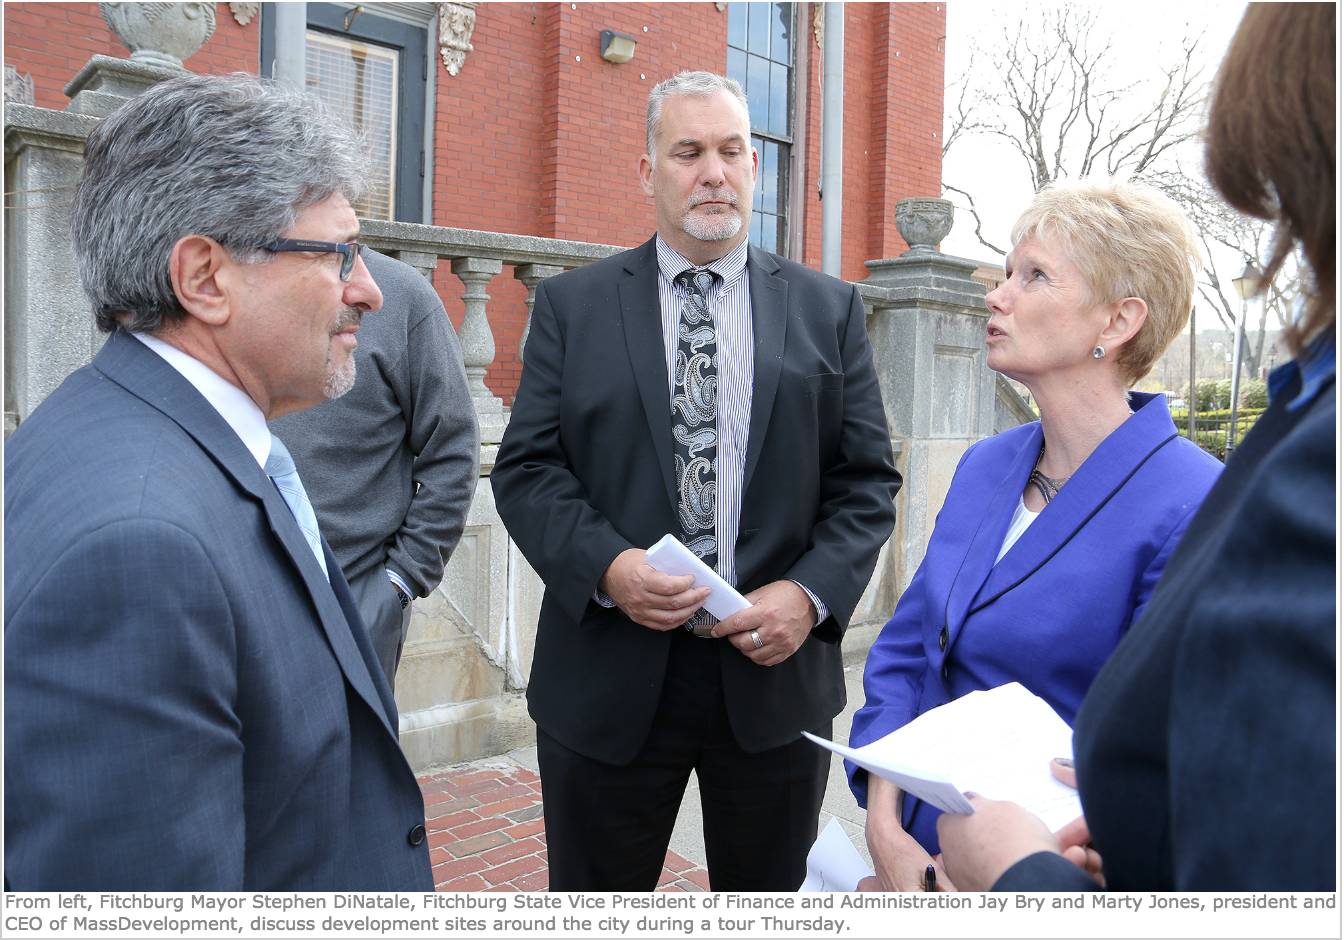 FITCHBURG -- Last Thursday, Mayor Stephen DiNatale and Mary Jo Bohart, Fitchburg's director of economic development, led representatives from MassDevelopment on a tour of development sites in the city...   Read more here!